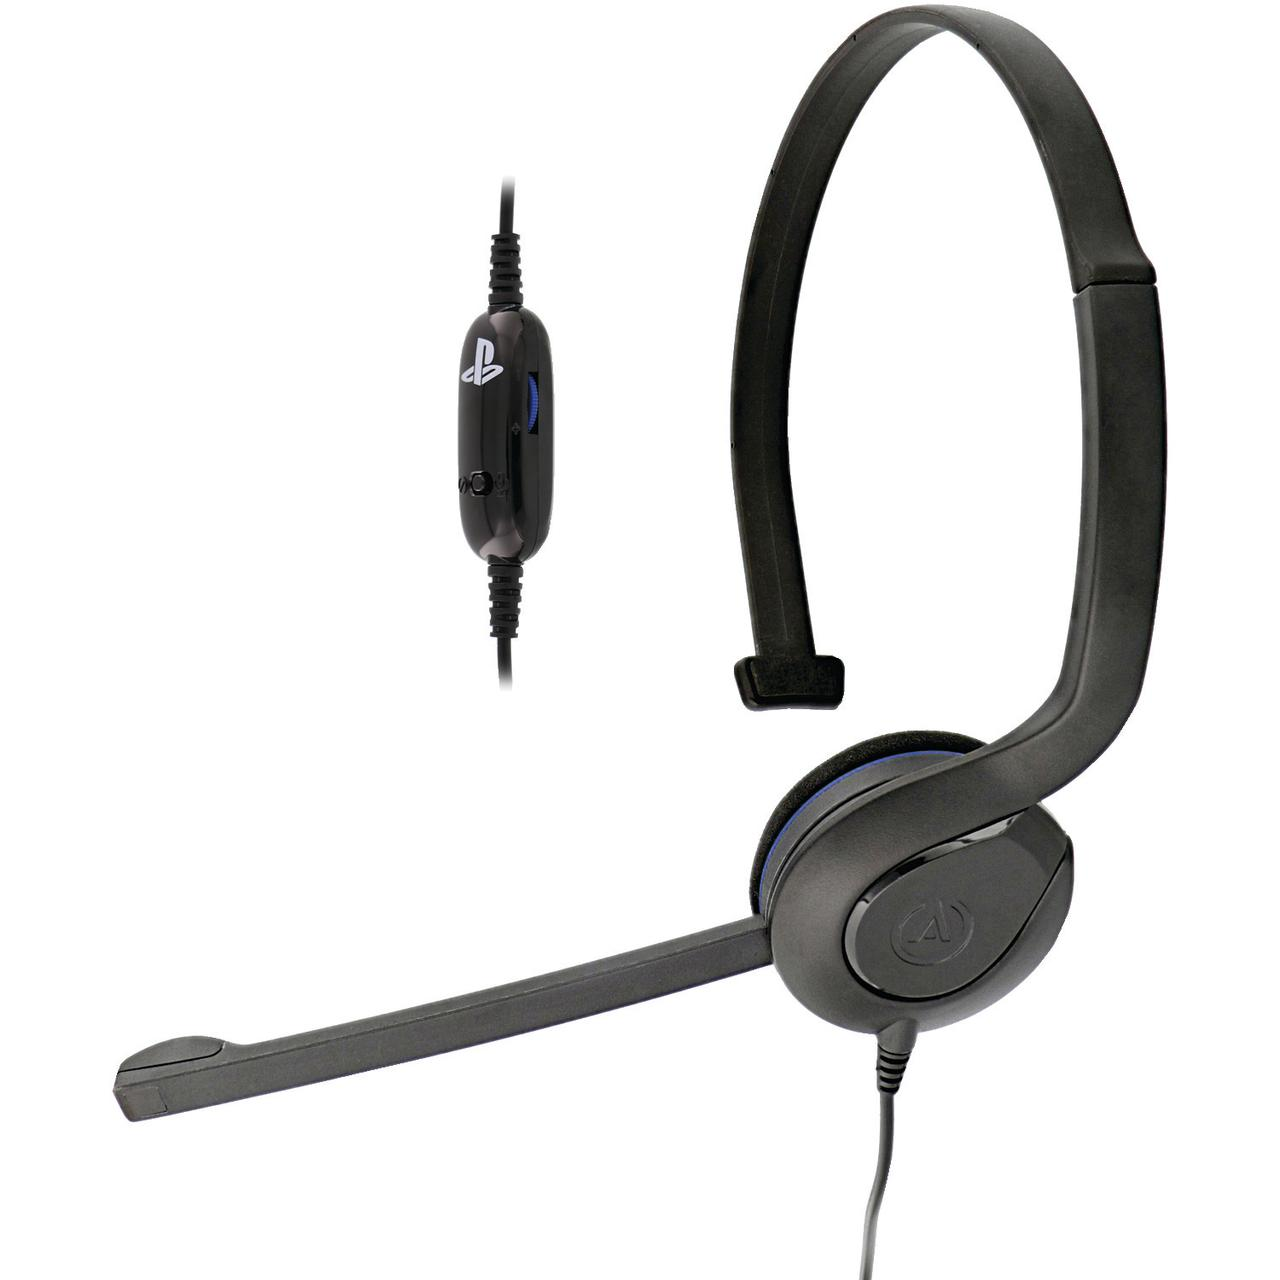 PowerA Chat Headset for PS4, Xbox, PC, Mobile (1364135-01)